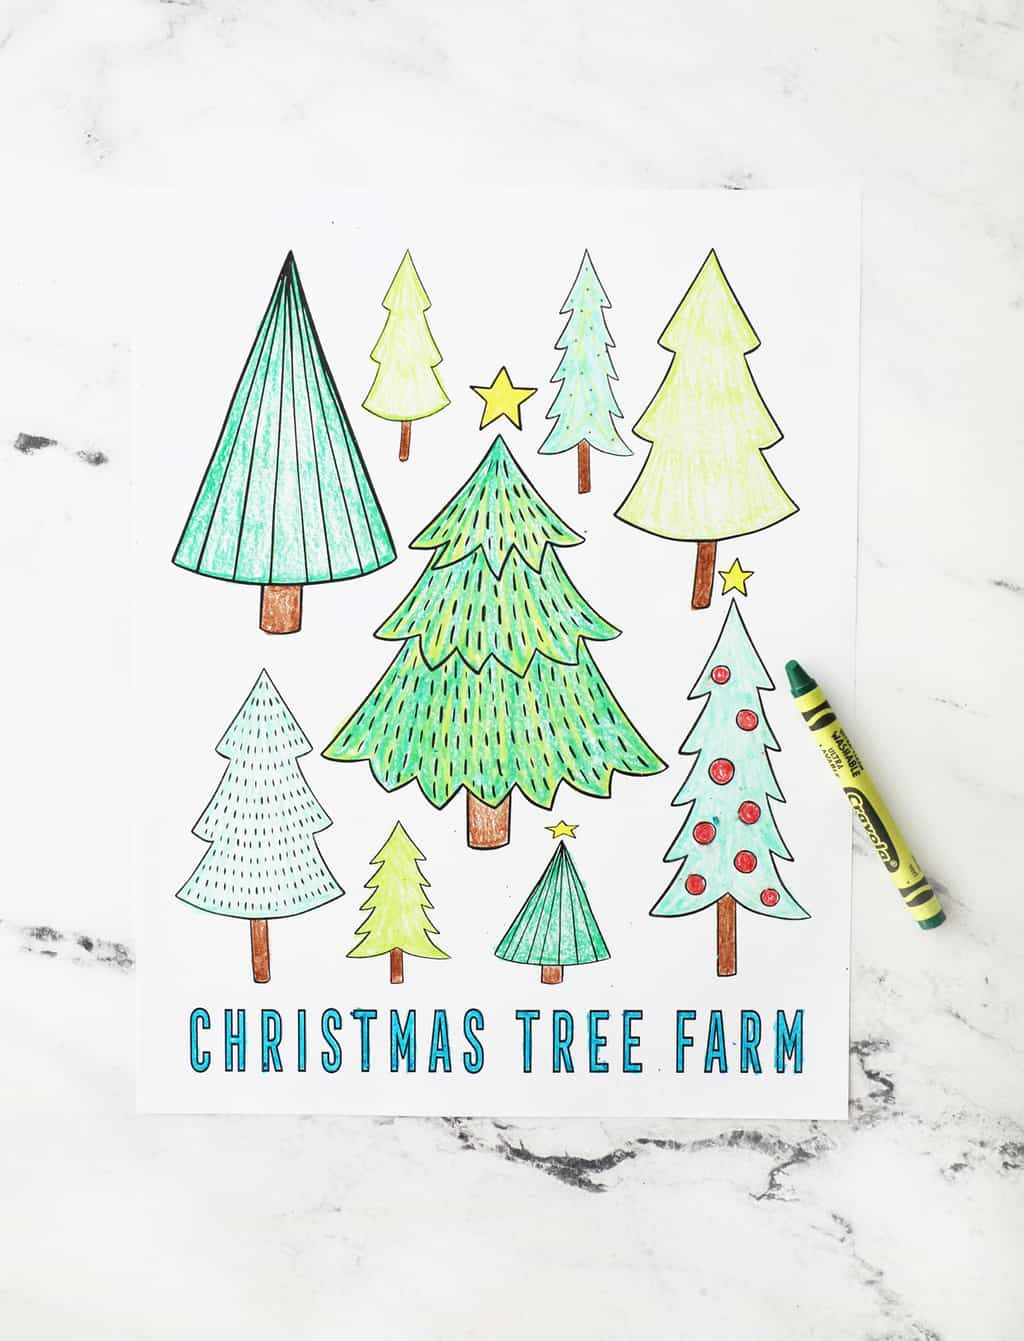 Christmas tree coloring page with the text Christmas tree farm on the bottom